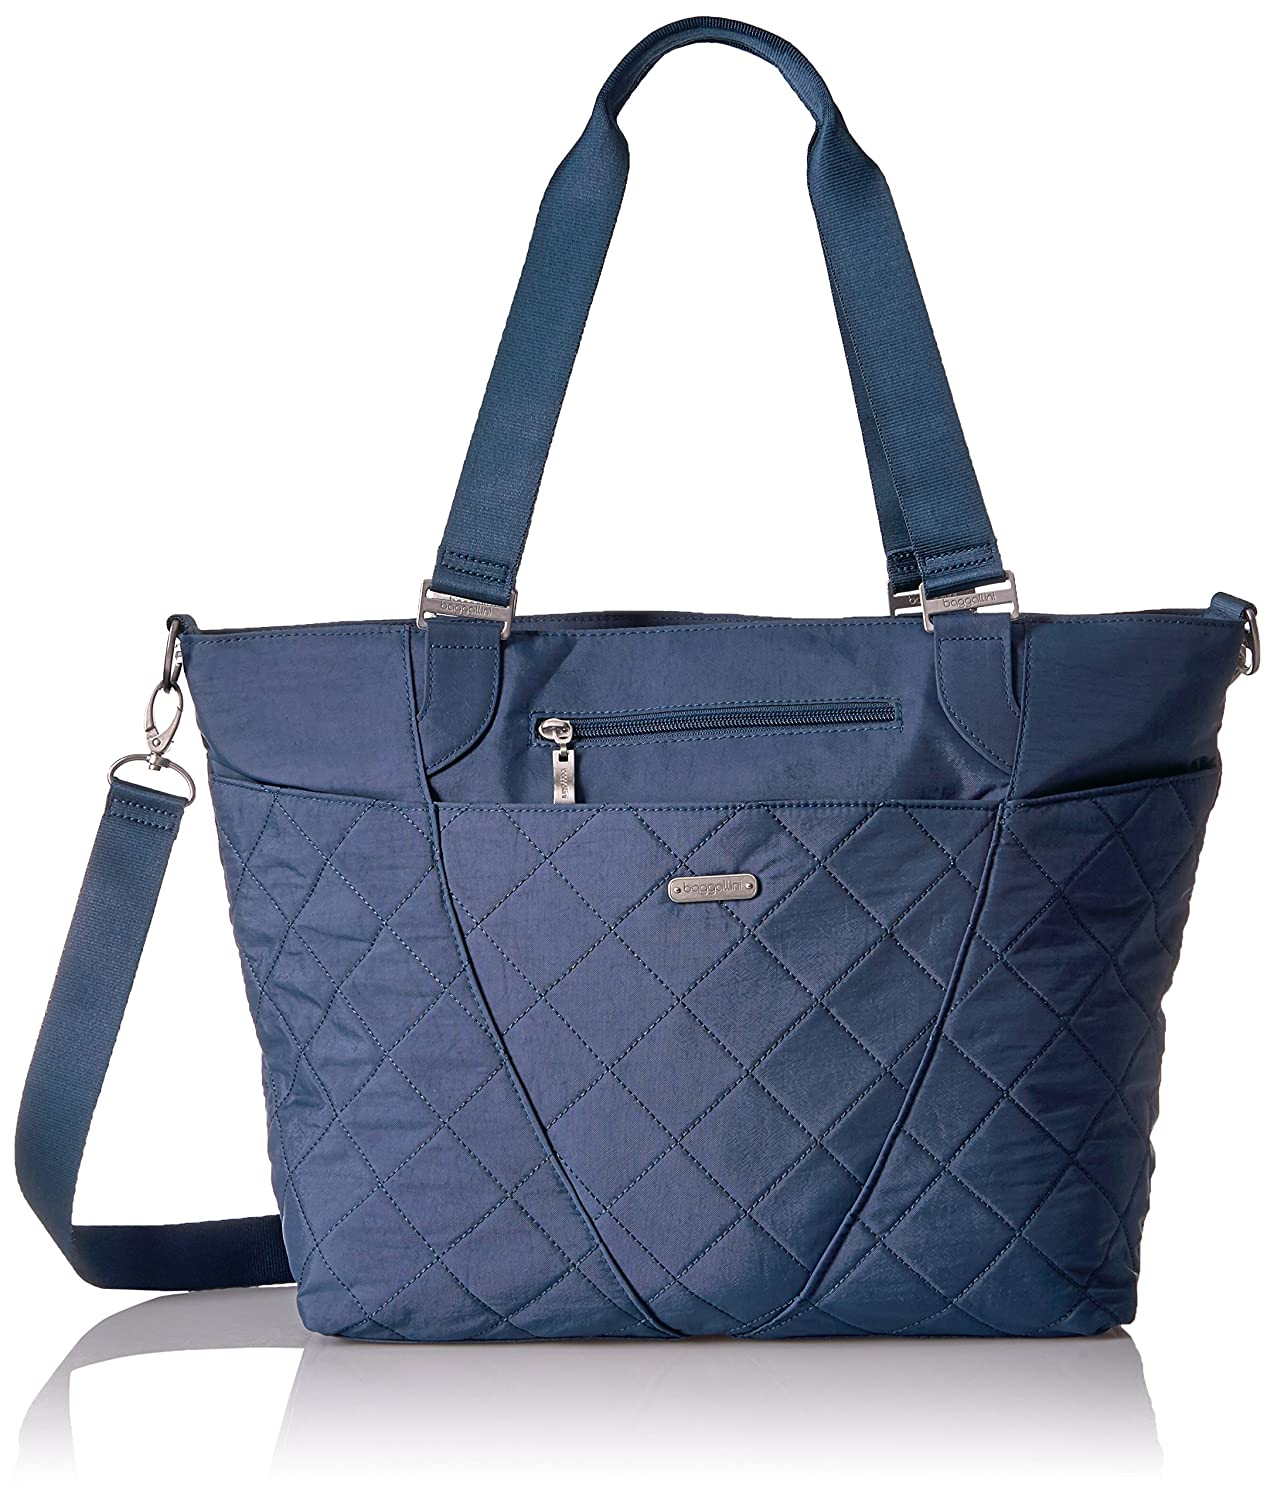 Baggallini Quilted Avenue Tote with Rfid Black Quilt FAT17 QAV189